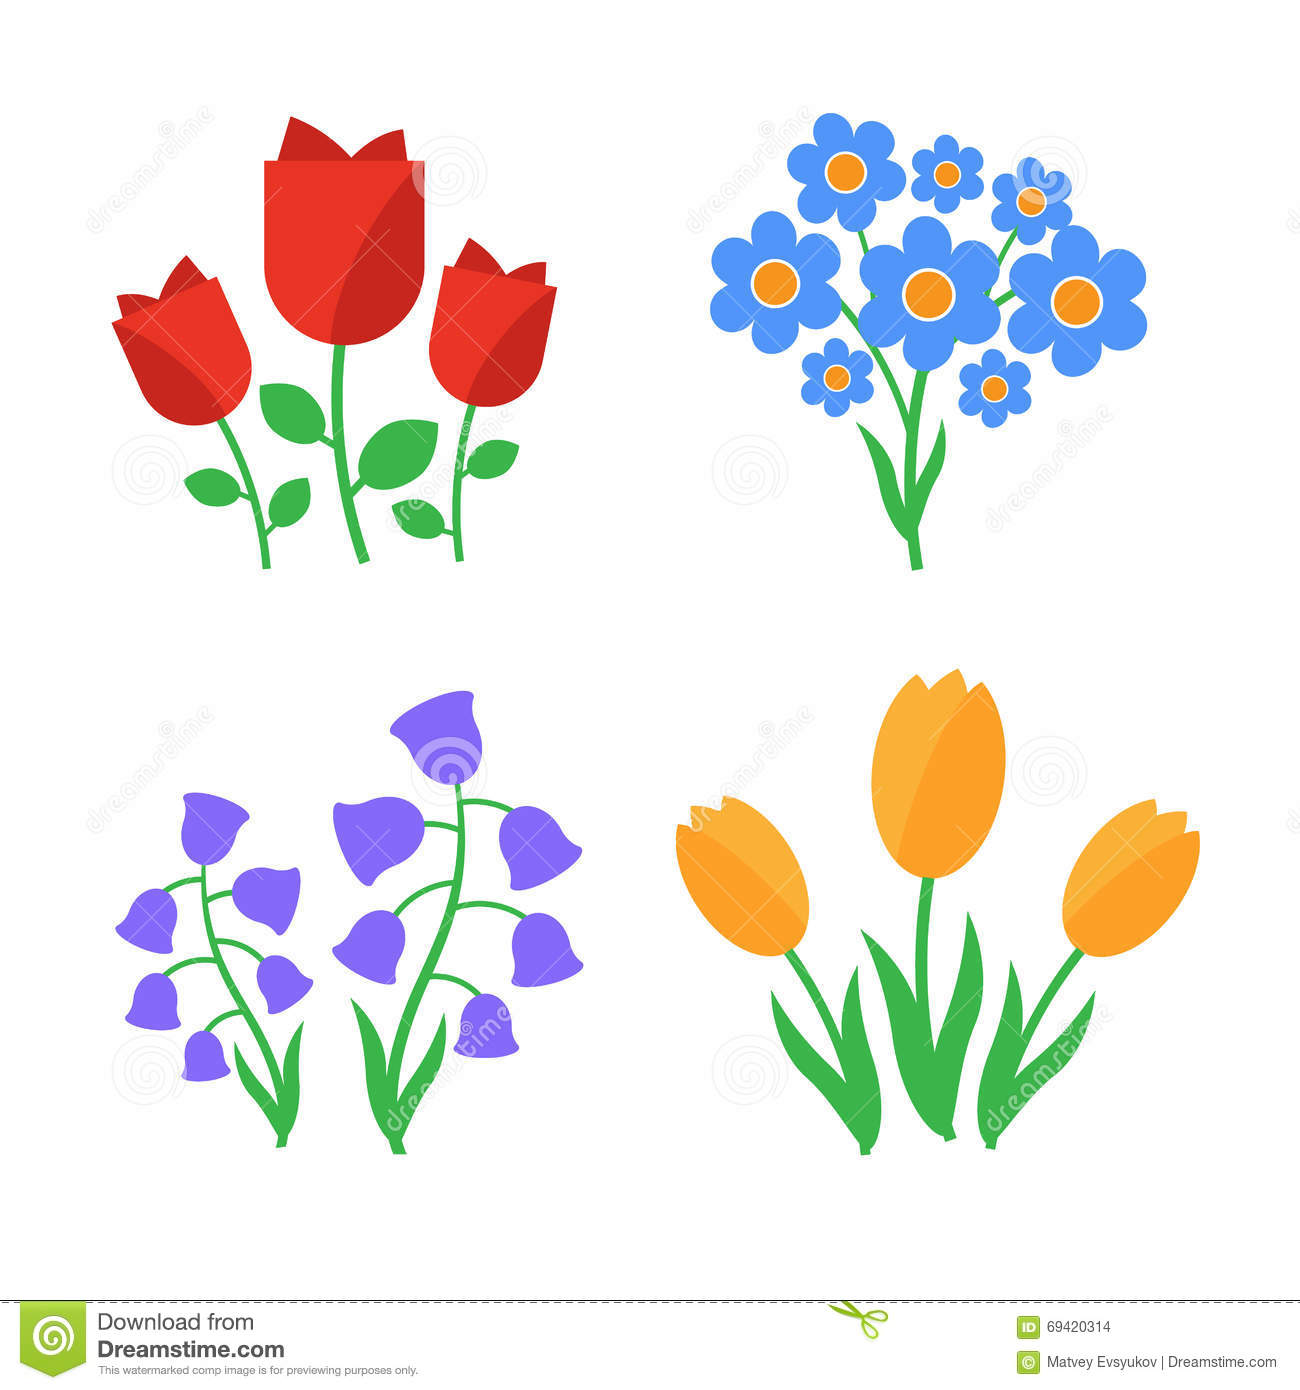 Cute spring flower - Spring Flowers Fun And Cute Spring Flowers Icons